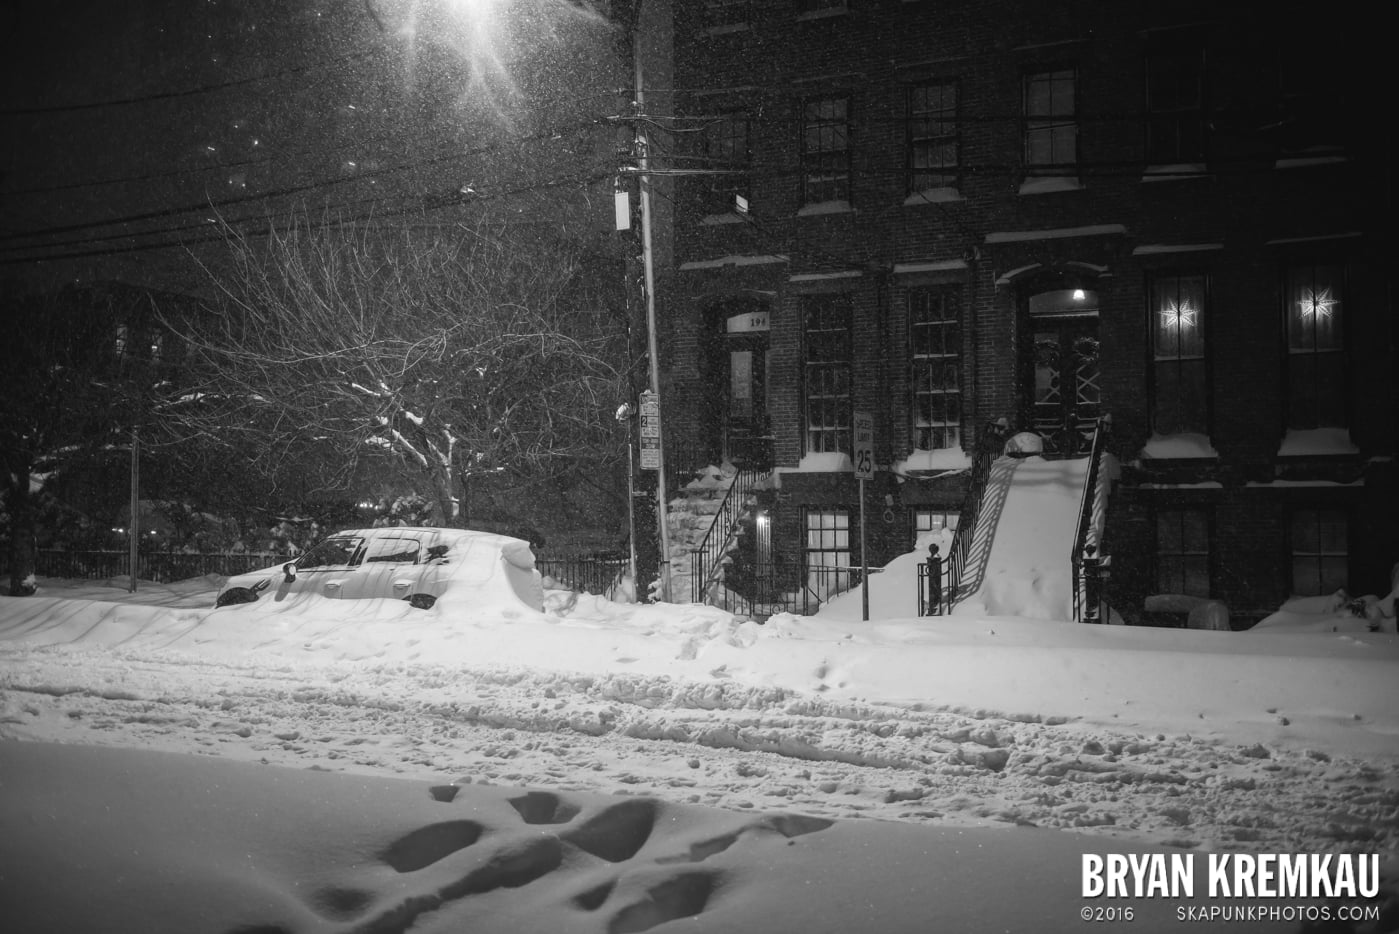 Blizzard 2016 in Jersey City, NJ - 1.23.16 (21)